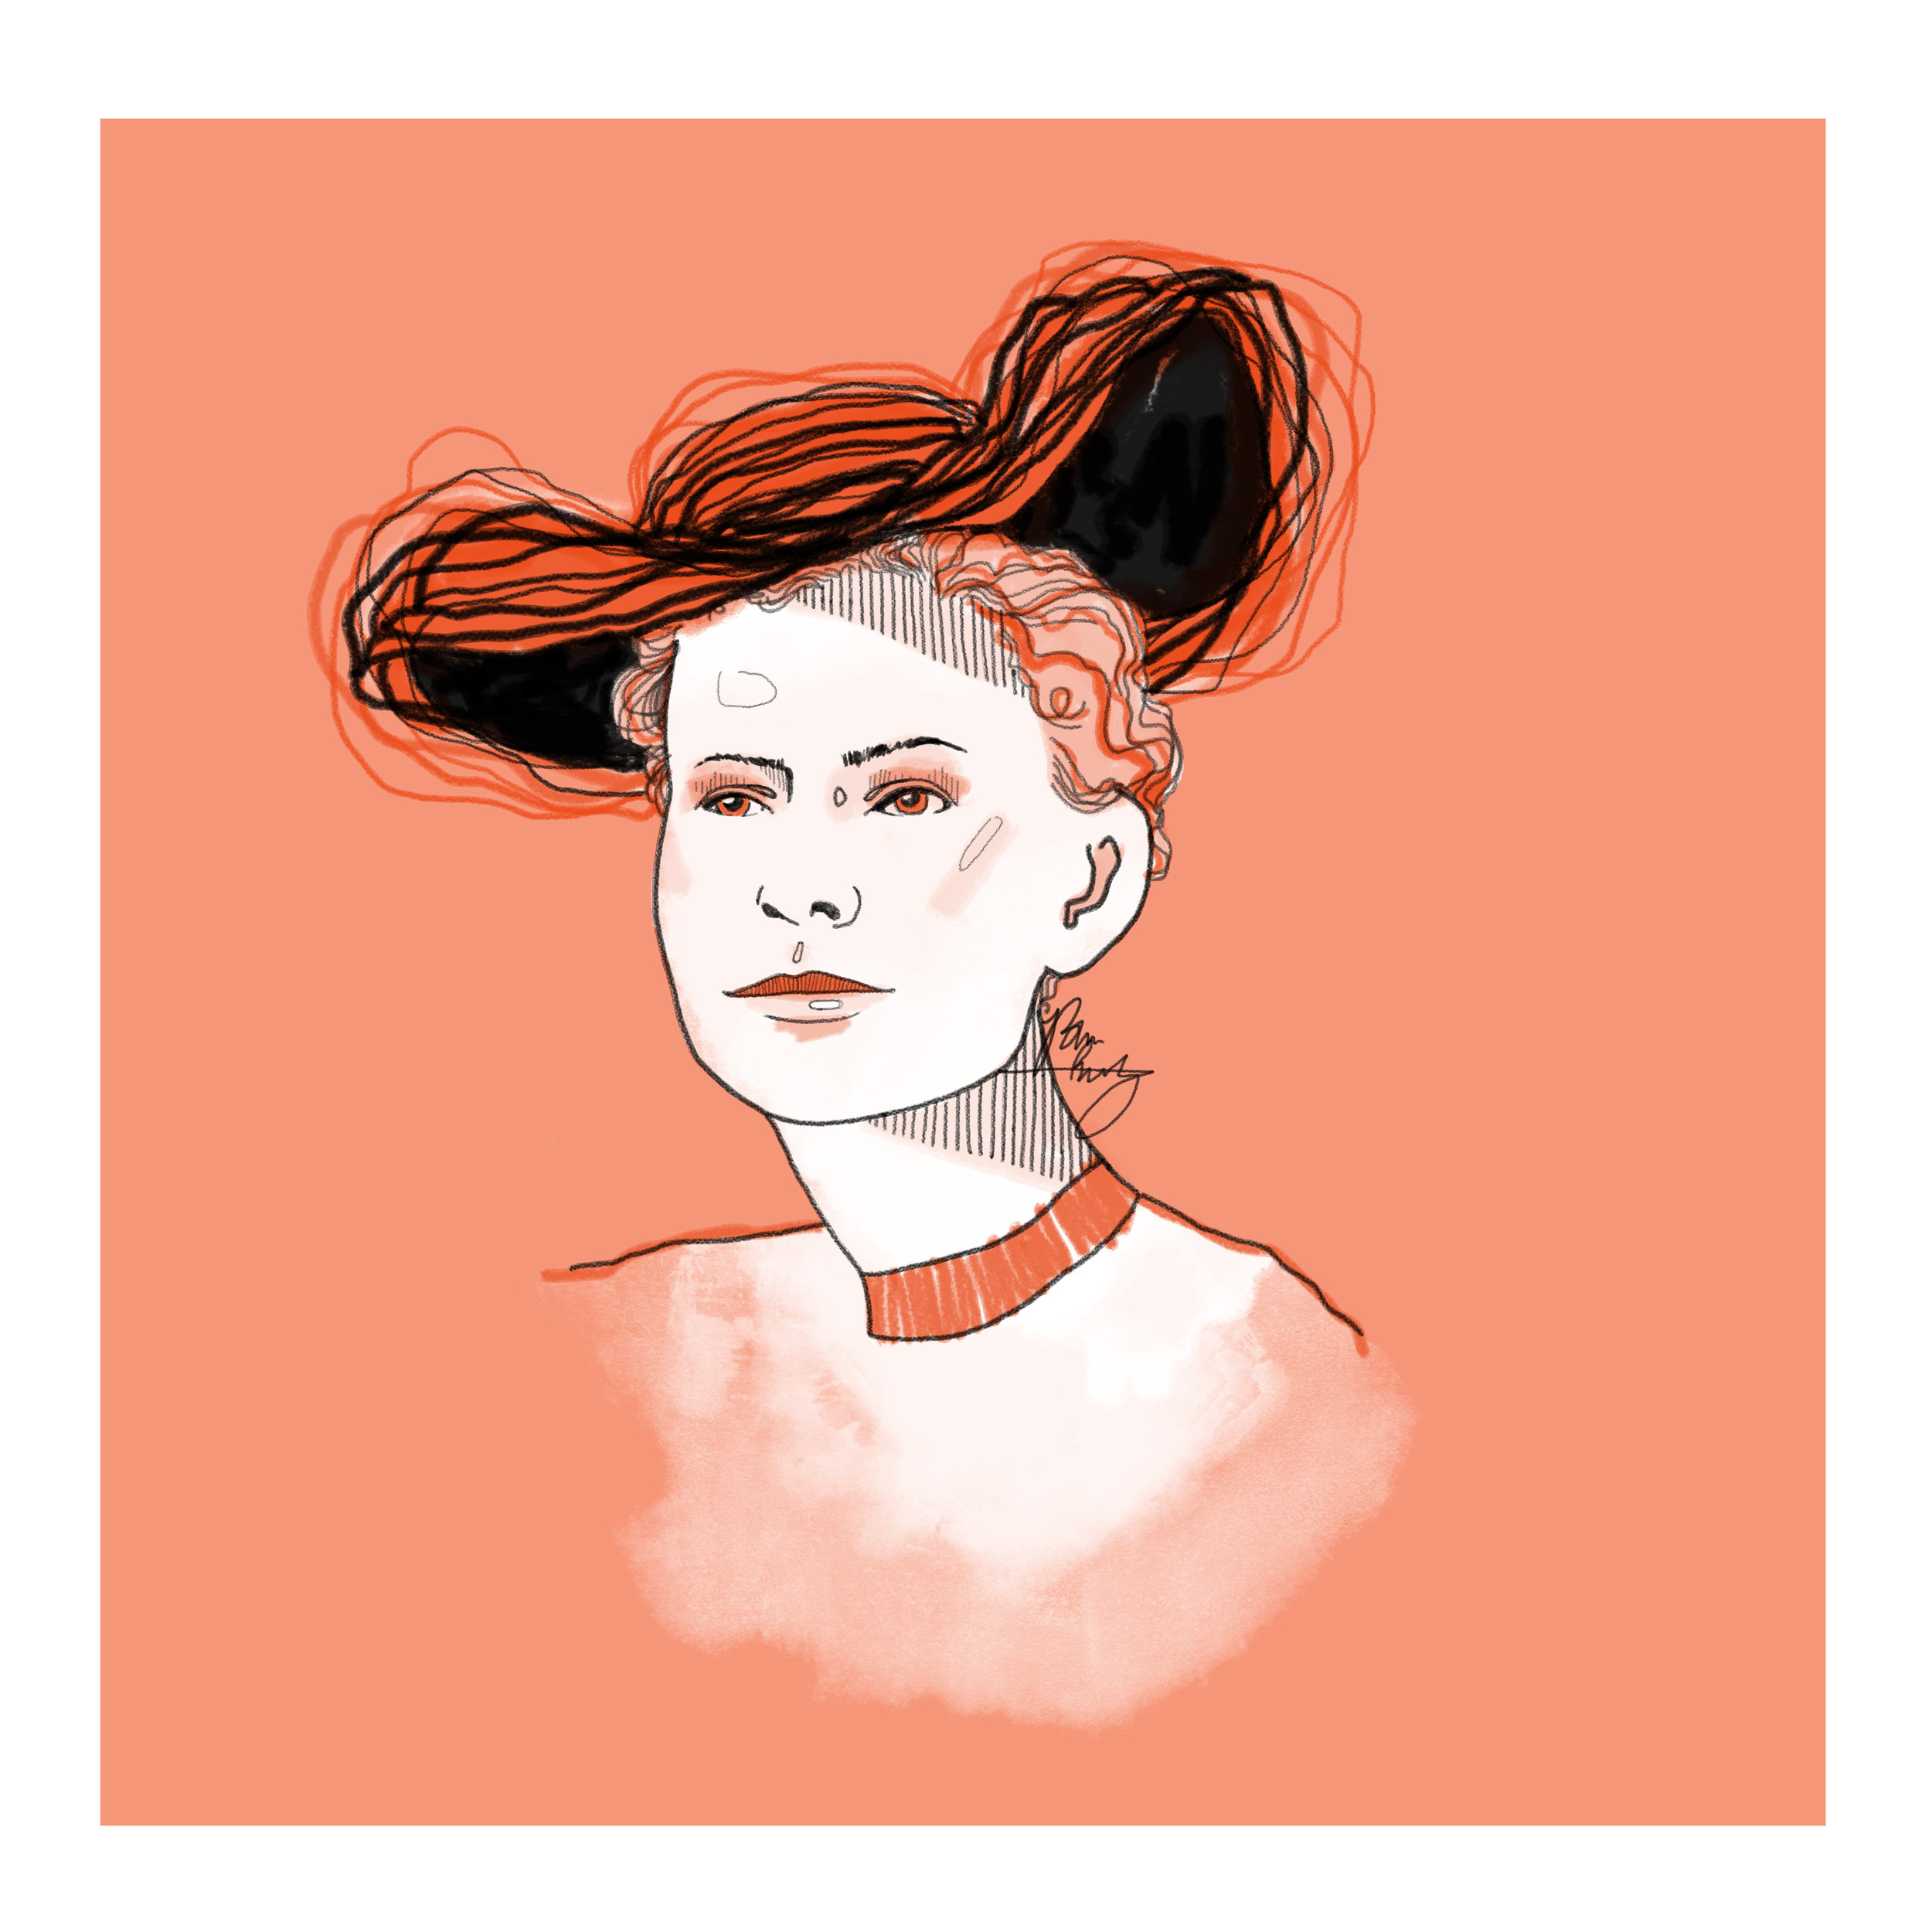 Nettie Stevens Illustration by Bree Reetz